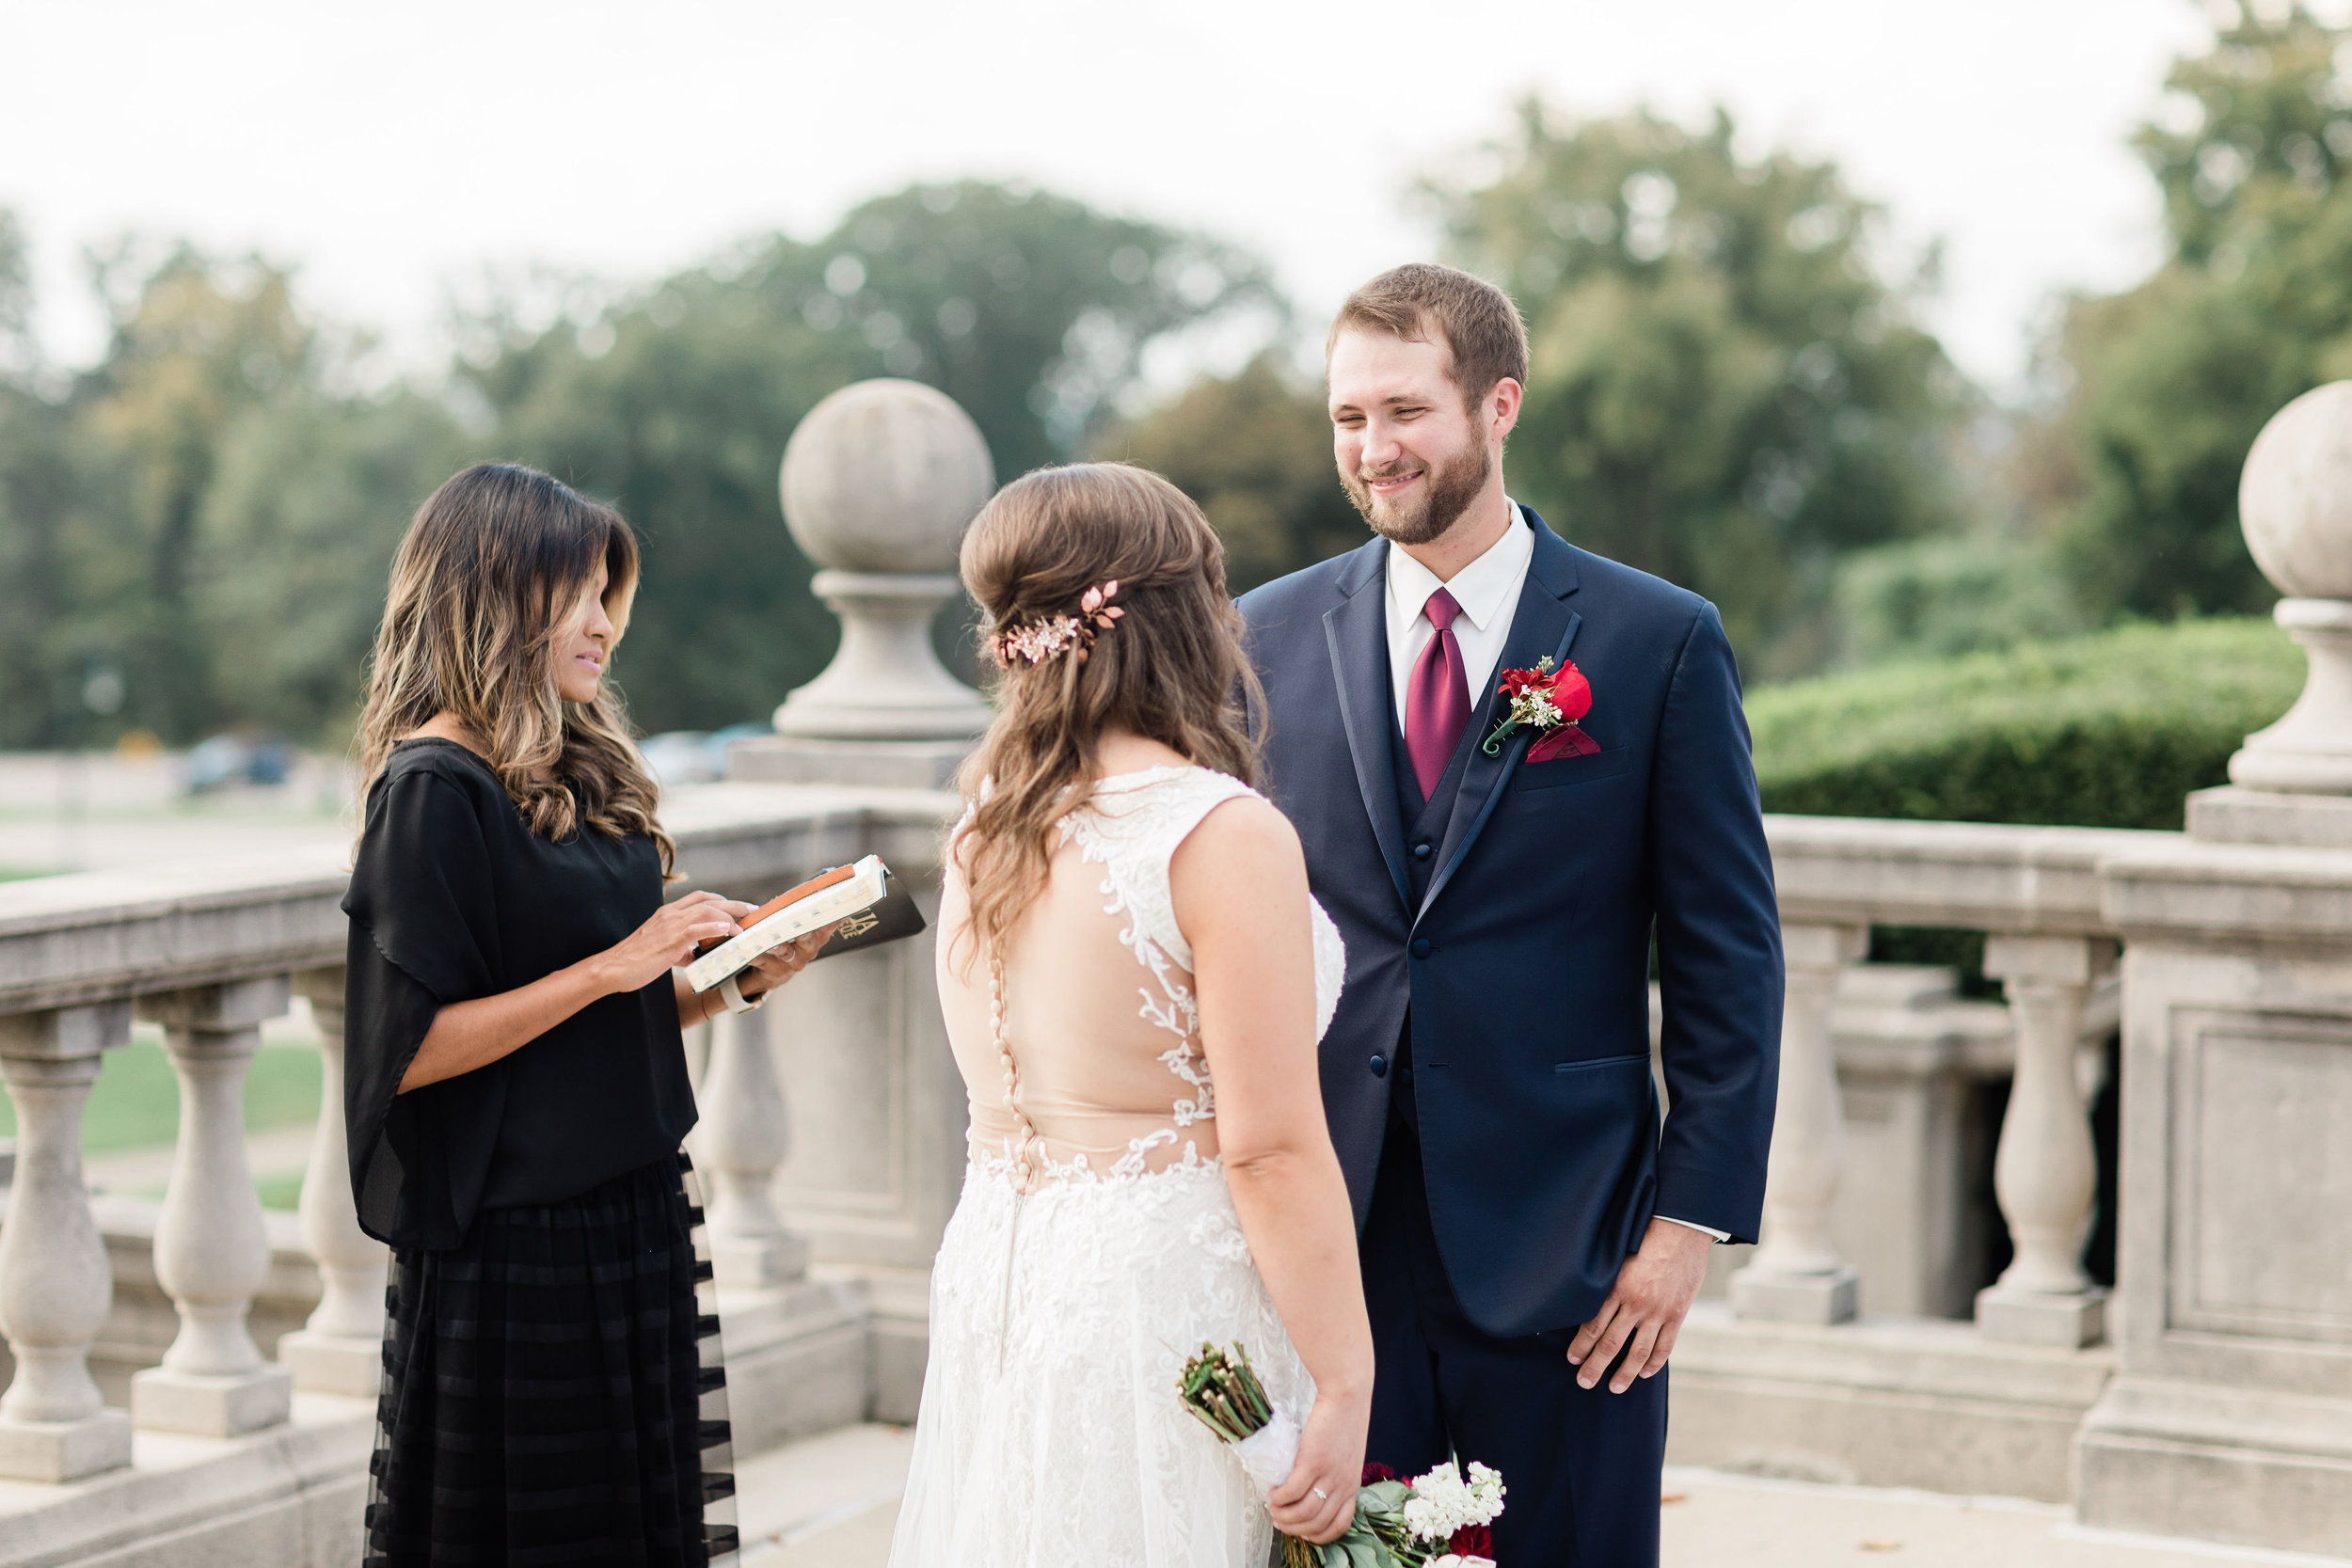 ault park cincinnati wedding-4.jpg